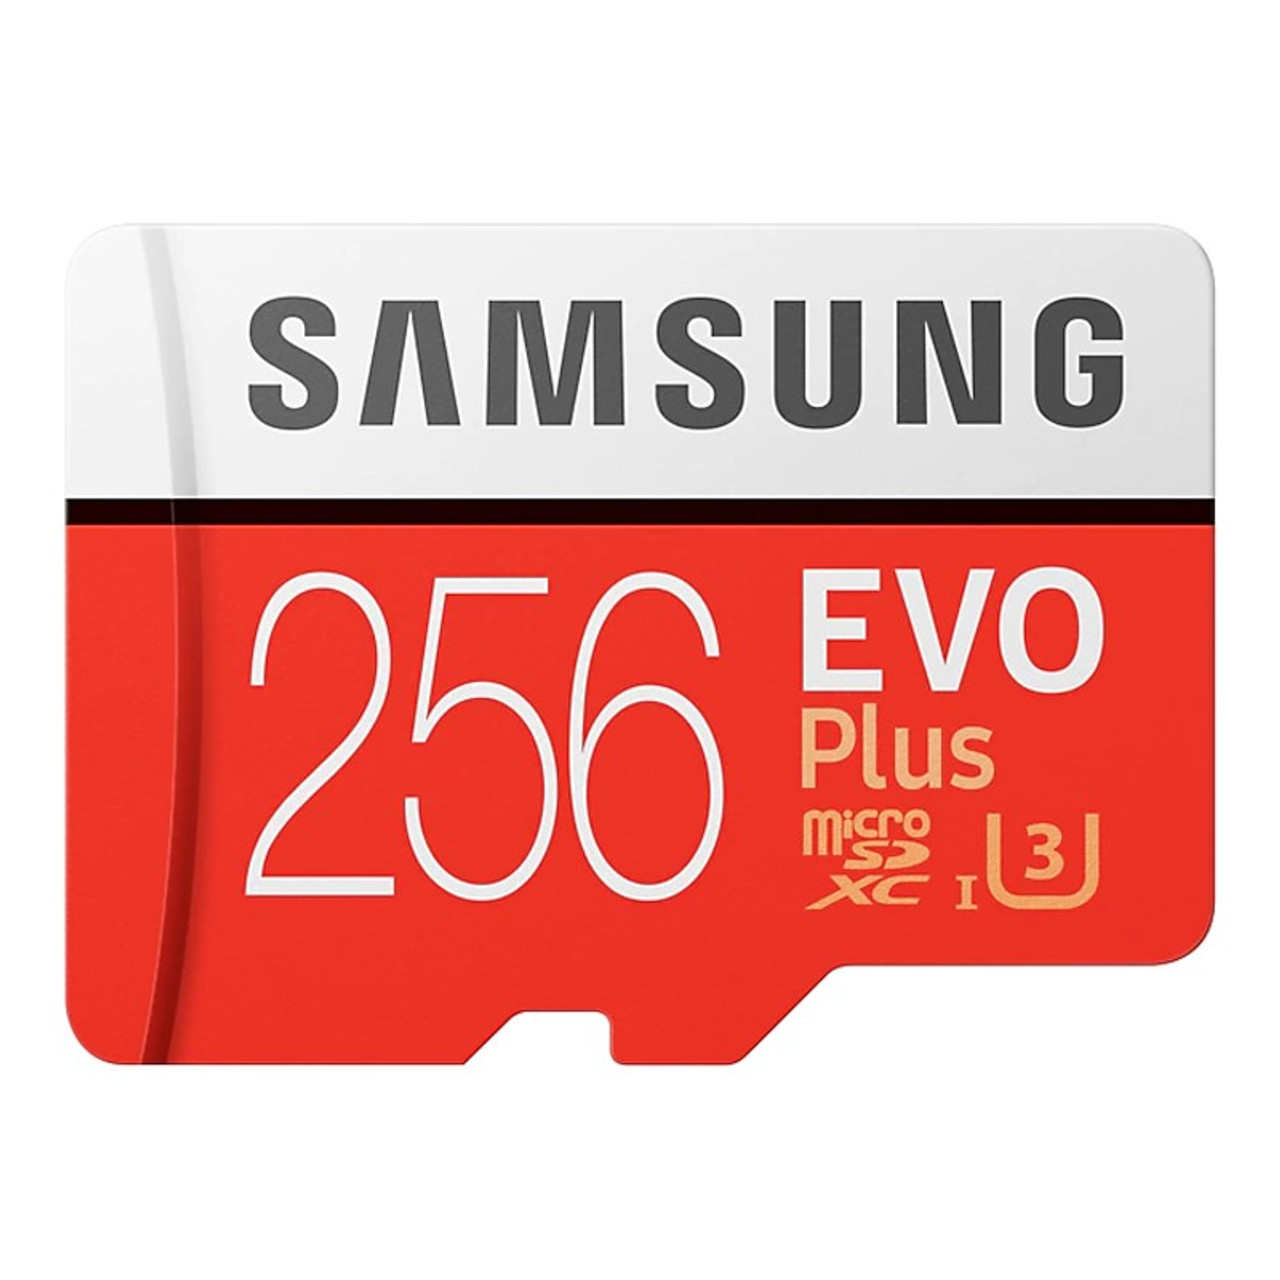 Image for Samsung 256GB microSDXC EVO Plus UHS-I Class 10 Memory Card - No Adapter CX Computer Superstore